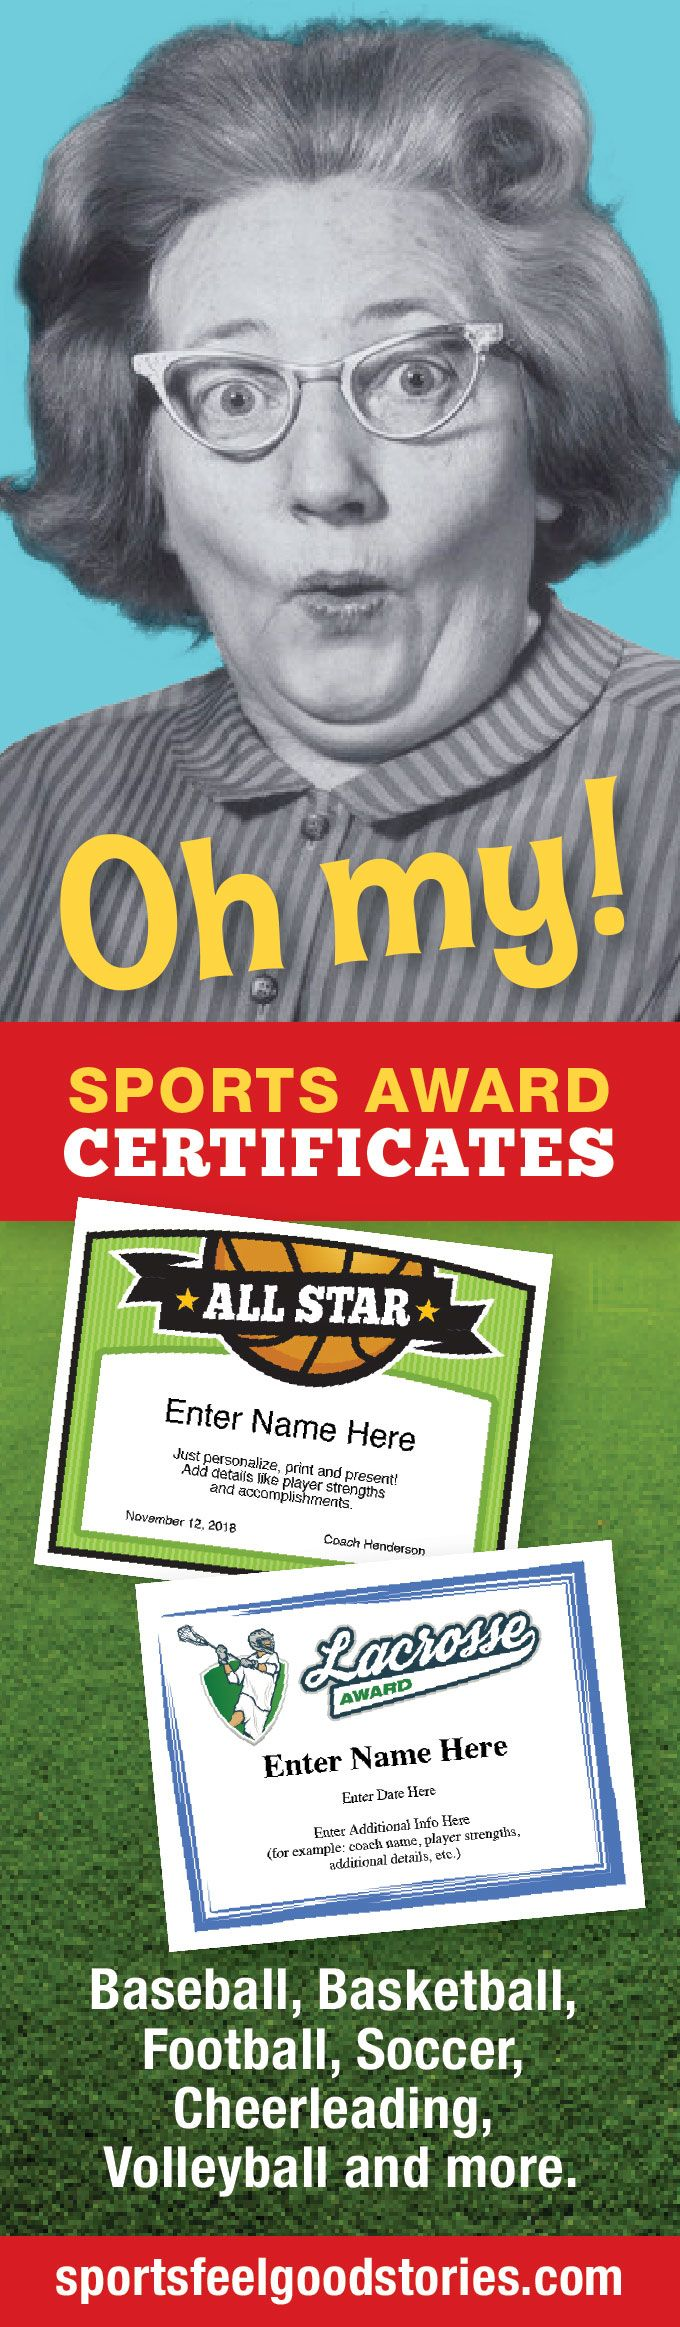 Sports Award Certificates Templates — Just personalize print and present for a memorable keepsake. Players will post in their bedrooms and on the fridge to help them remember a great season.   Certificates for baseball, basketball, football, lacrosse, hockey, soccer, volleyball, cheerleading, golf, tennis and more.  Award Certificate Maker.